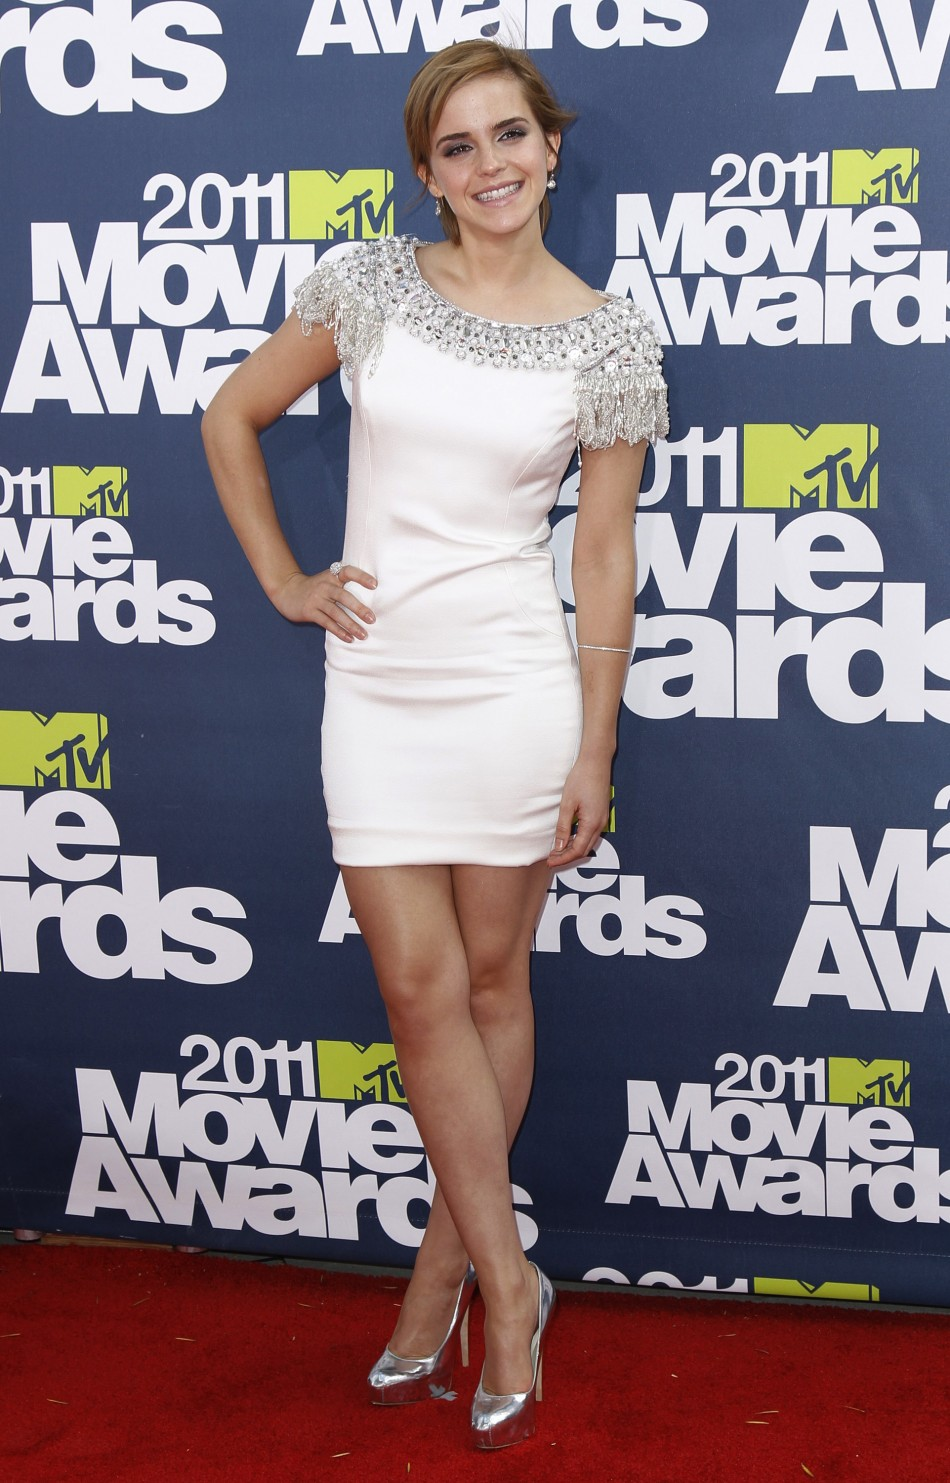 British actress Emma Watson arrives at the 2011 MTV Movie Awards in Los Angeles 2011